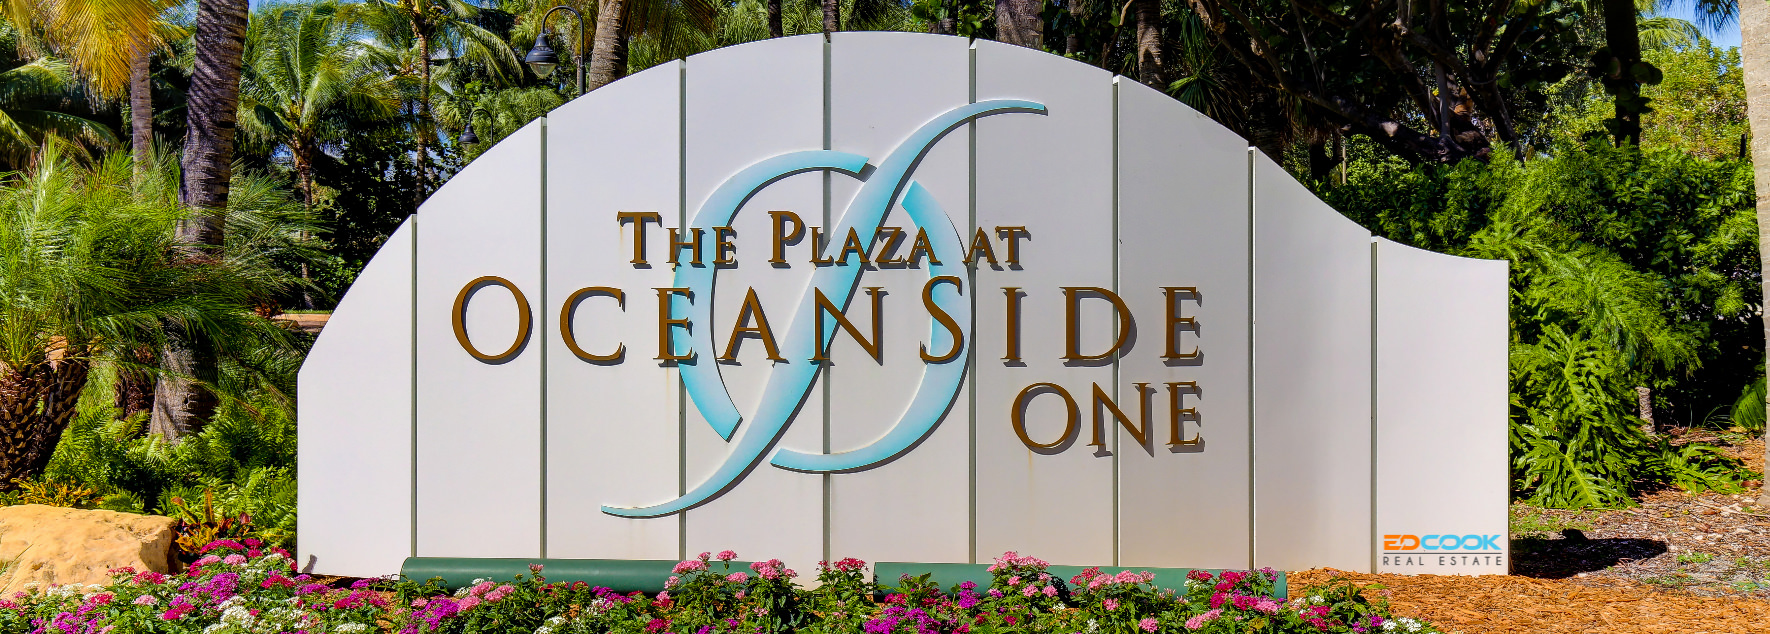 Plaza-At-Oceanside-Slider-21